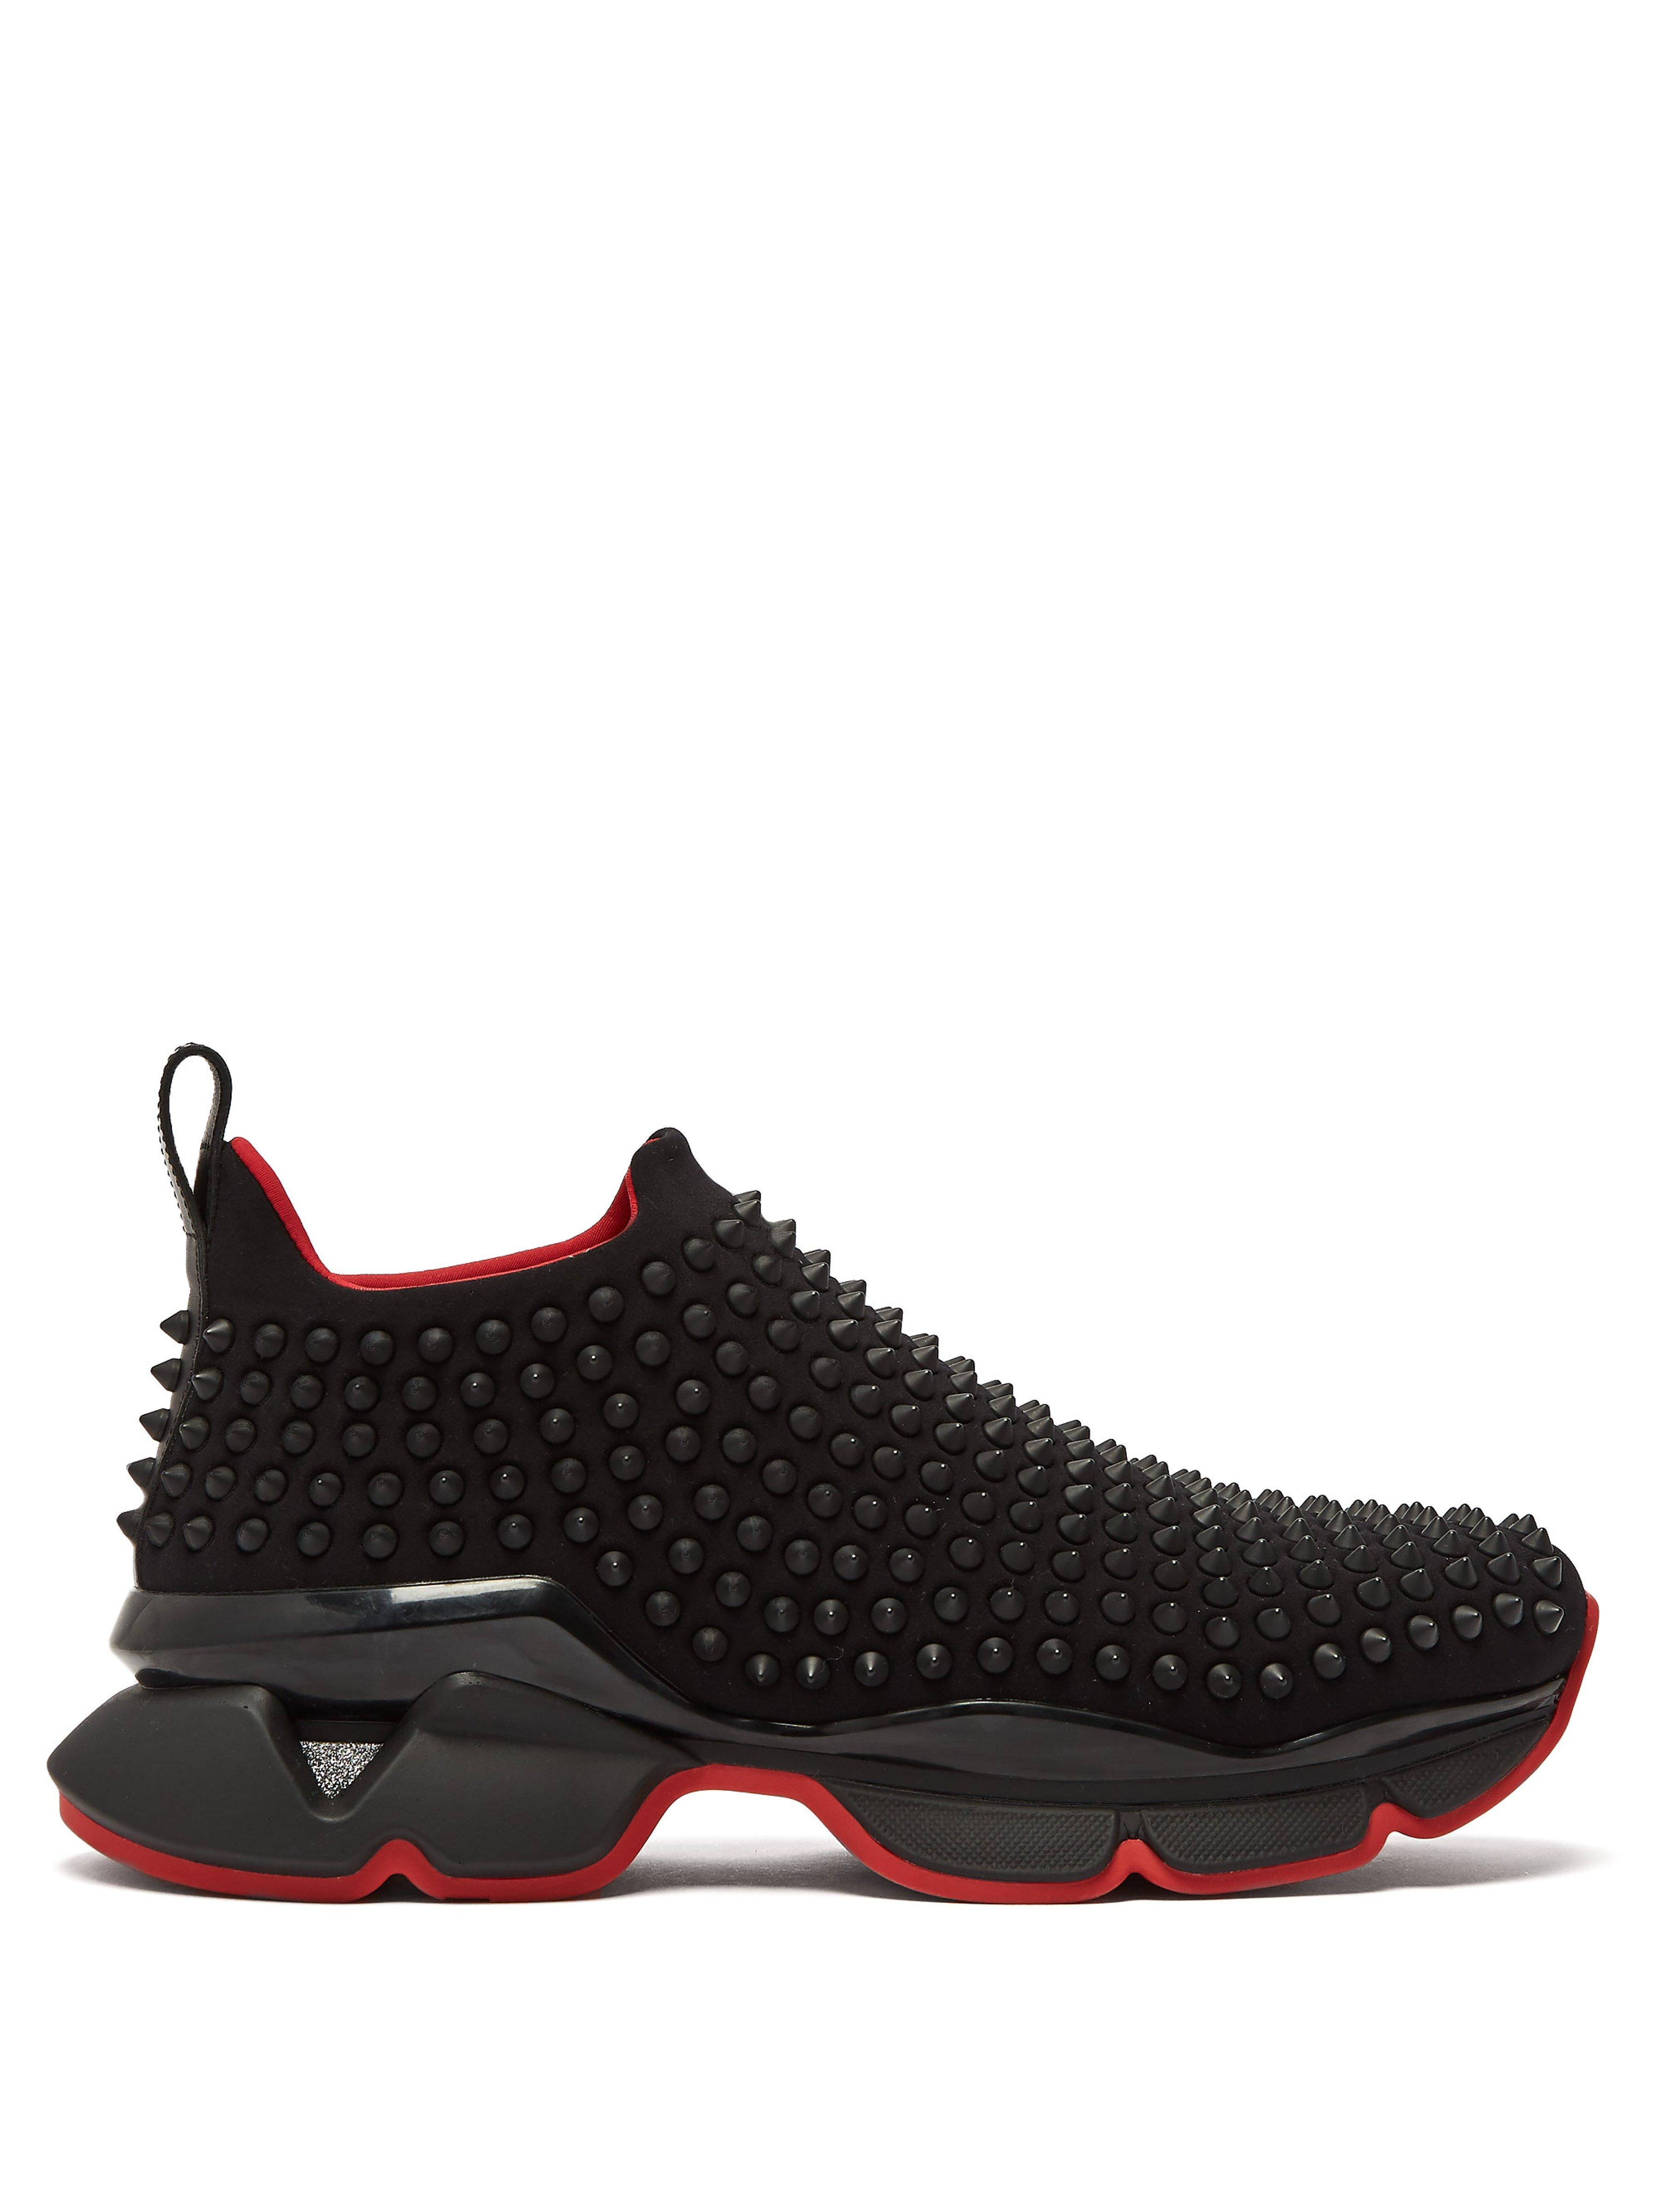 cbcbd1ac4e98 Christian Louboutin Spike Sock Studded Low Top Trainers in Black - Lyst